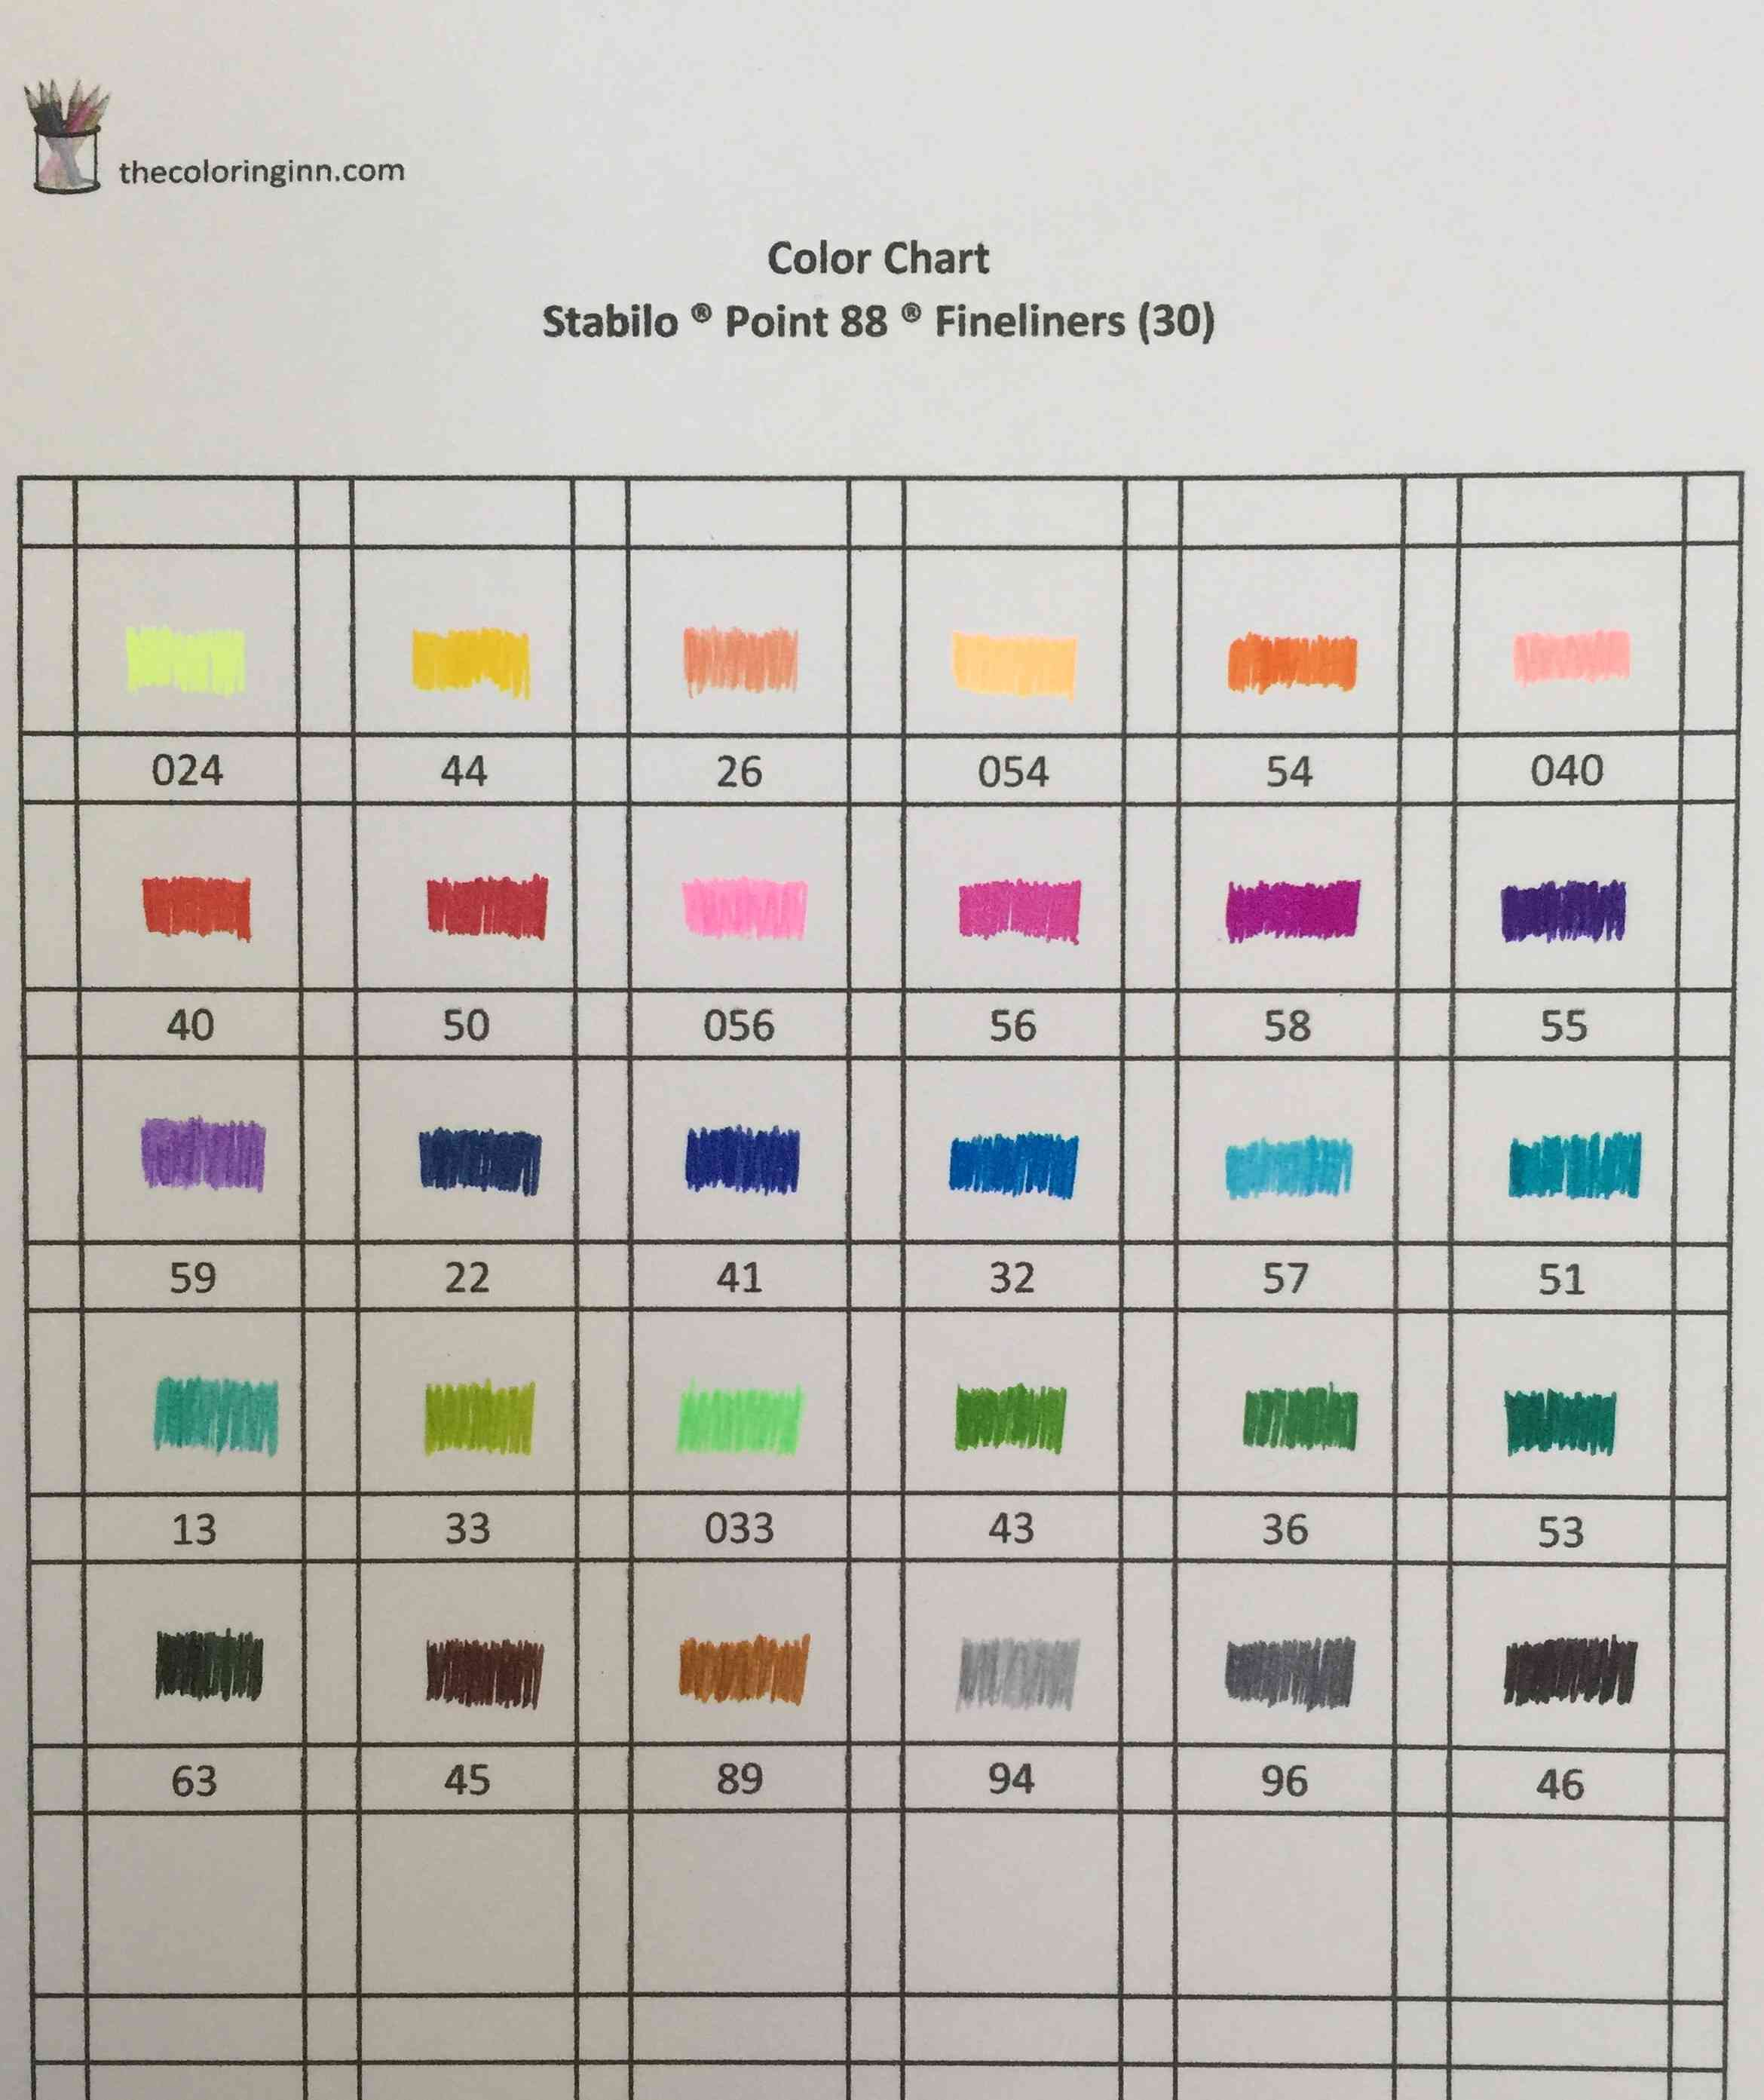 Color Chart For Stabilo R Point 88 R Fineliners